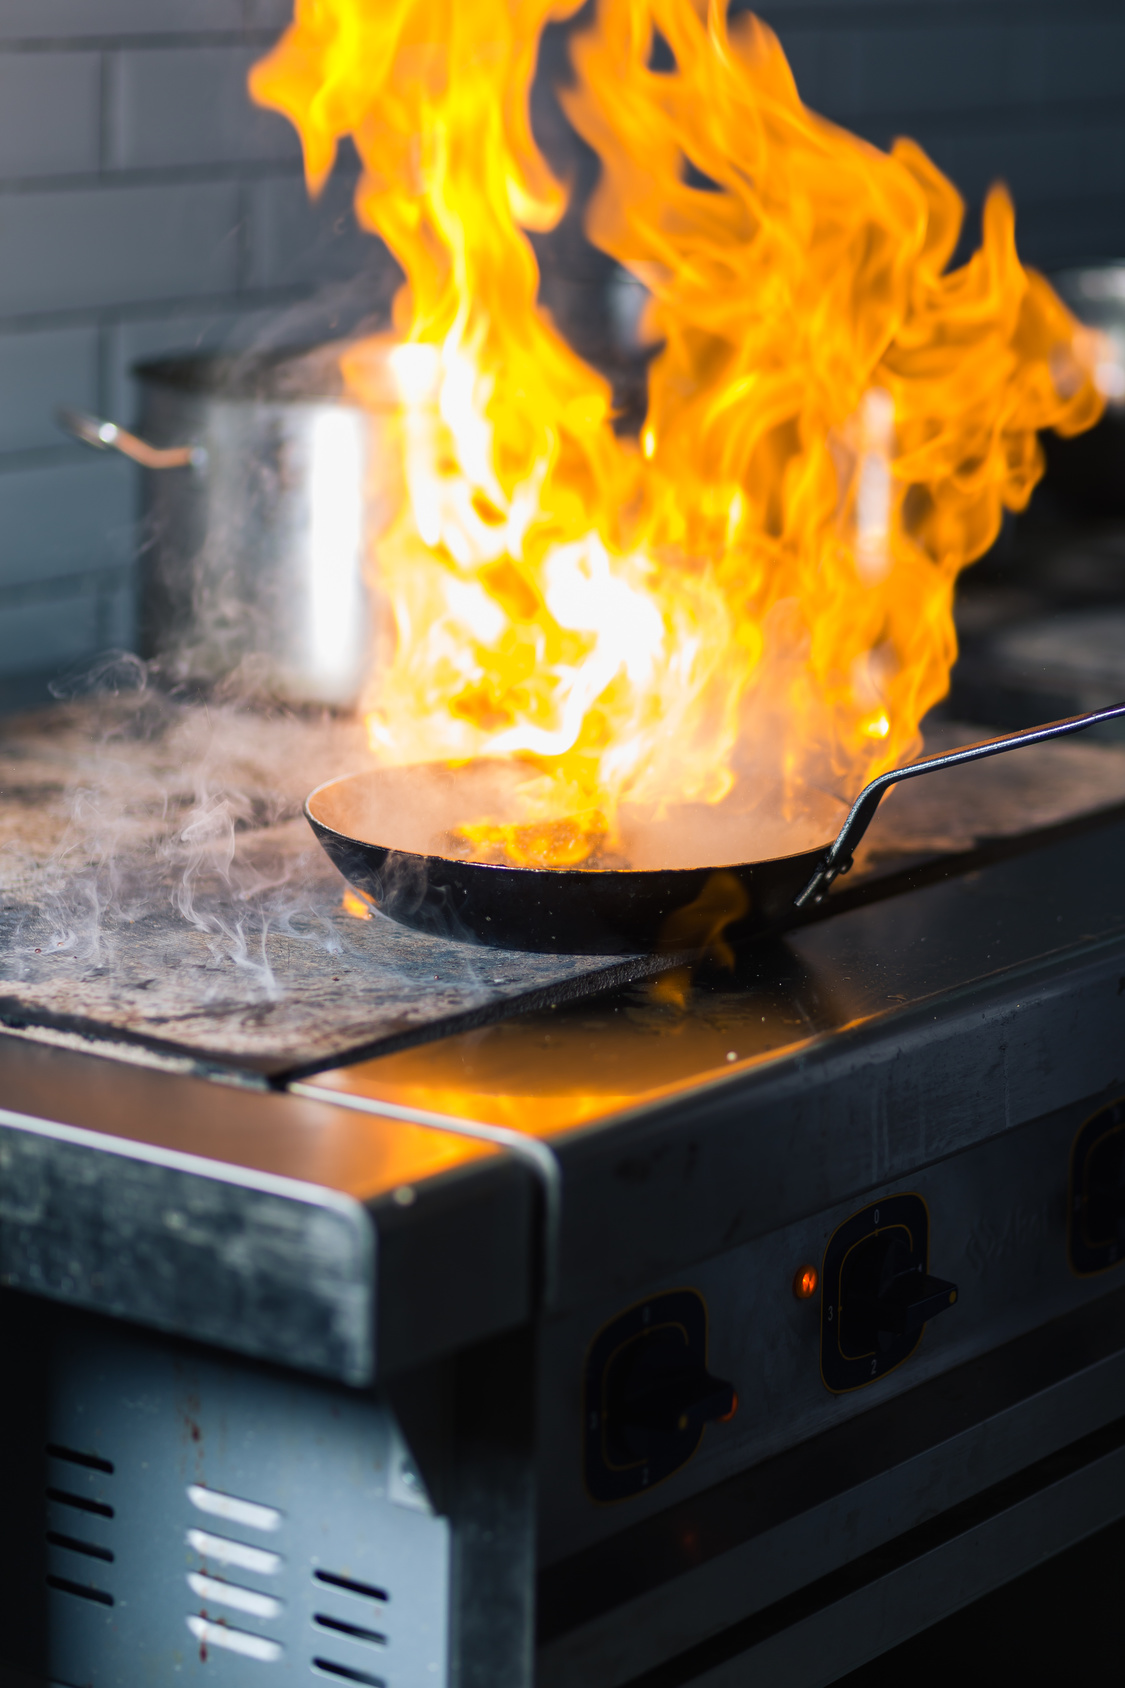 Kitchen-Grease-Fire-Iron-Pan